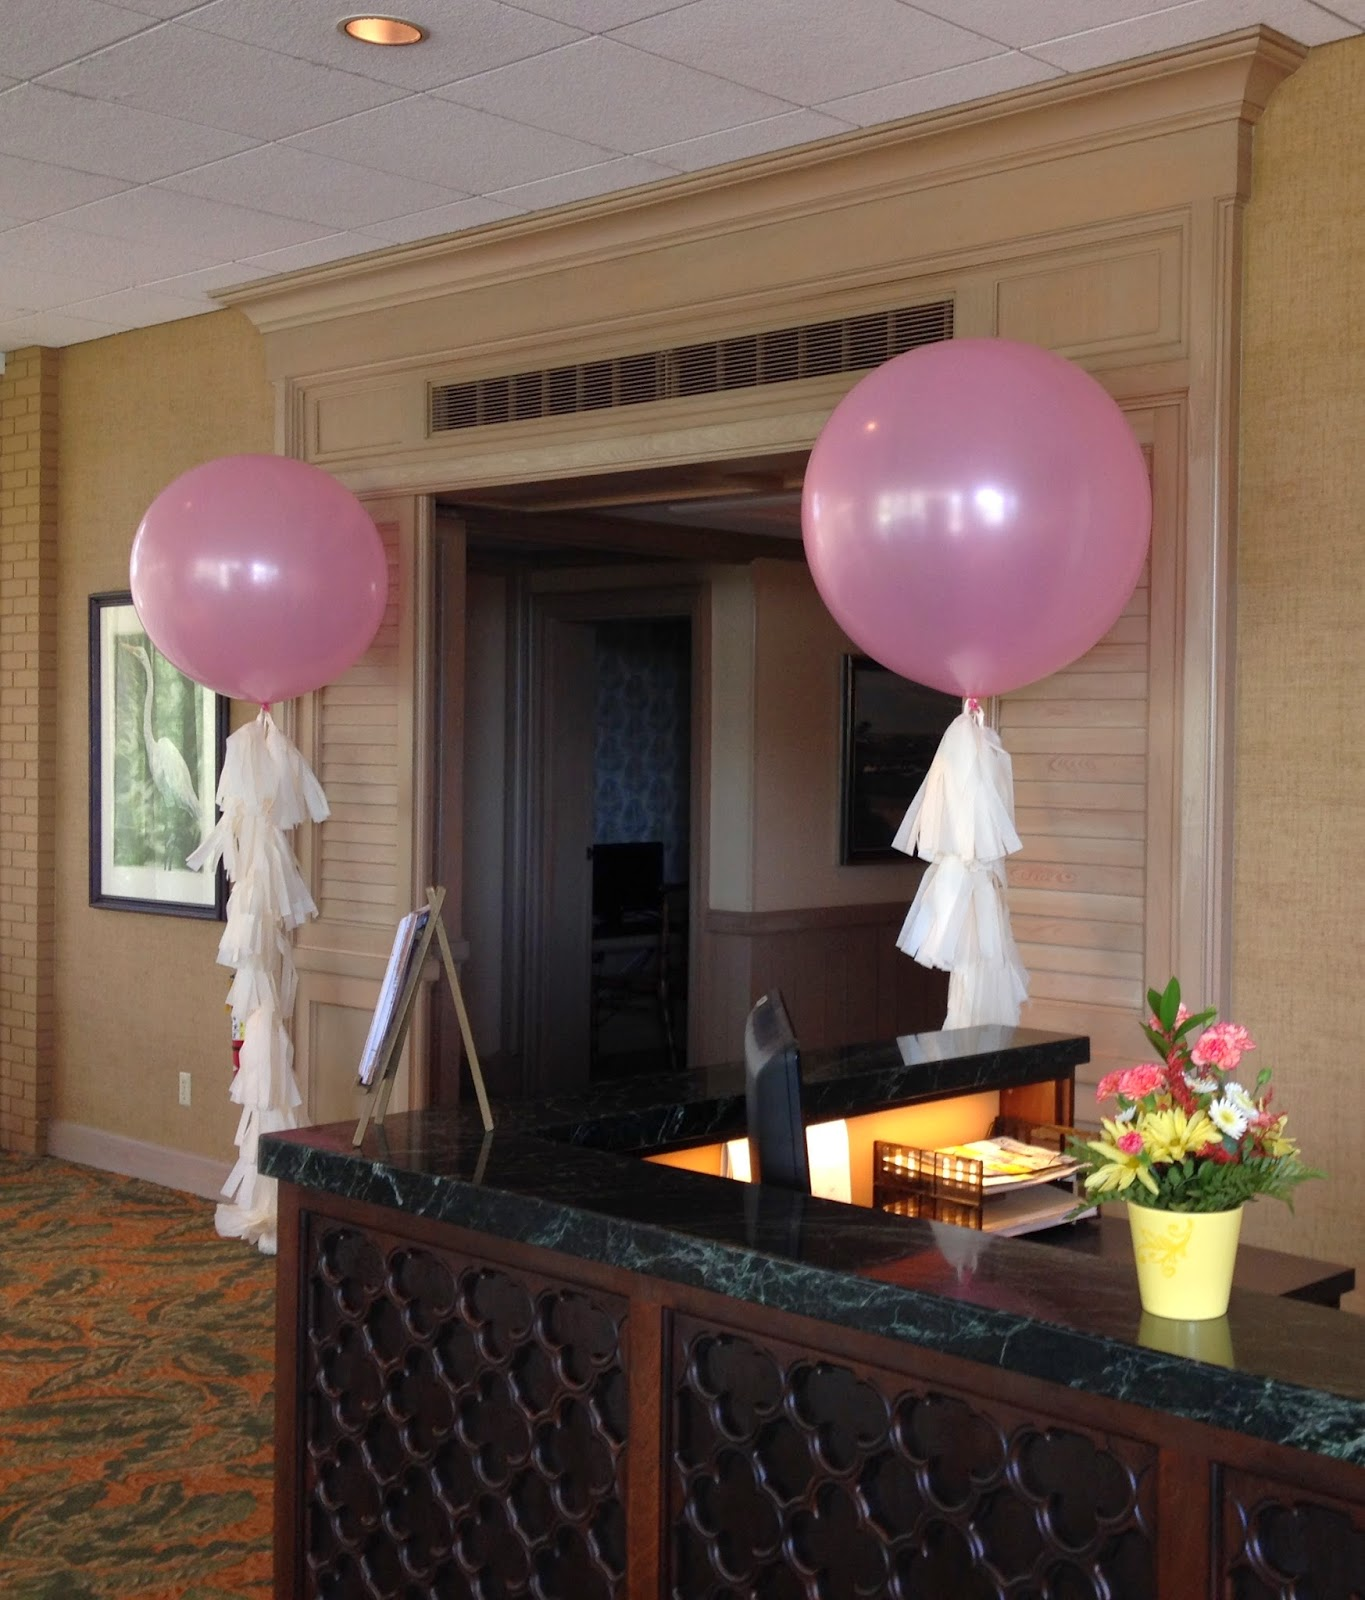 Party people event decorating company geronimo balloons for Balloon decoration companies